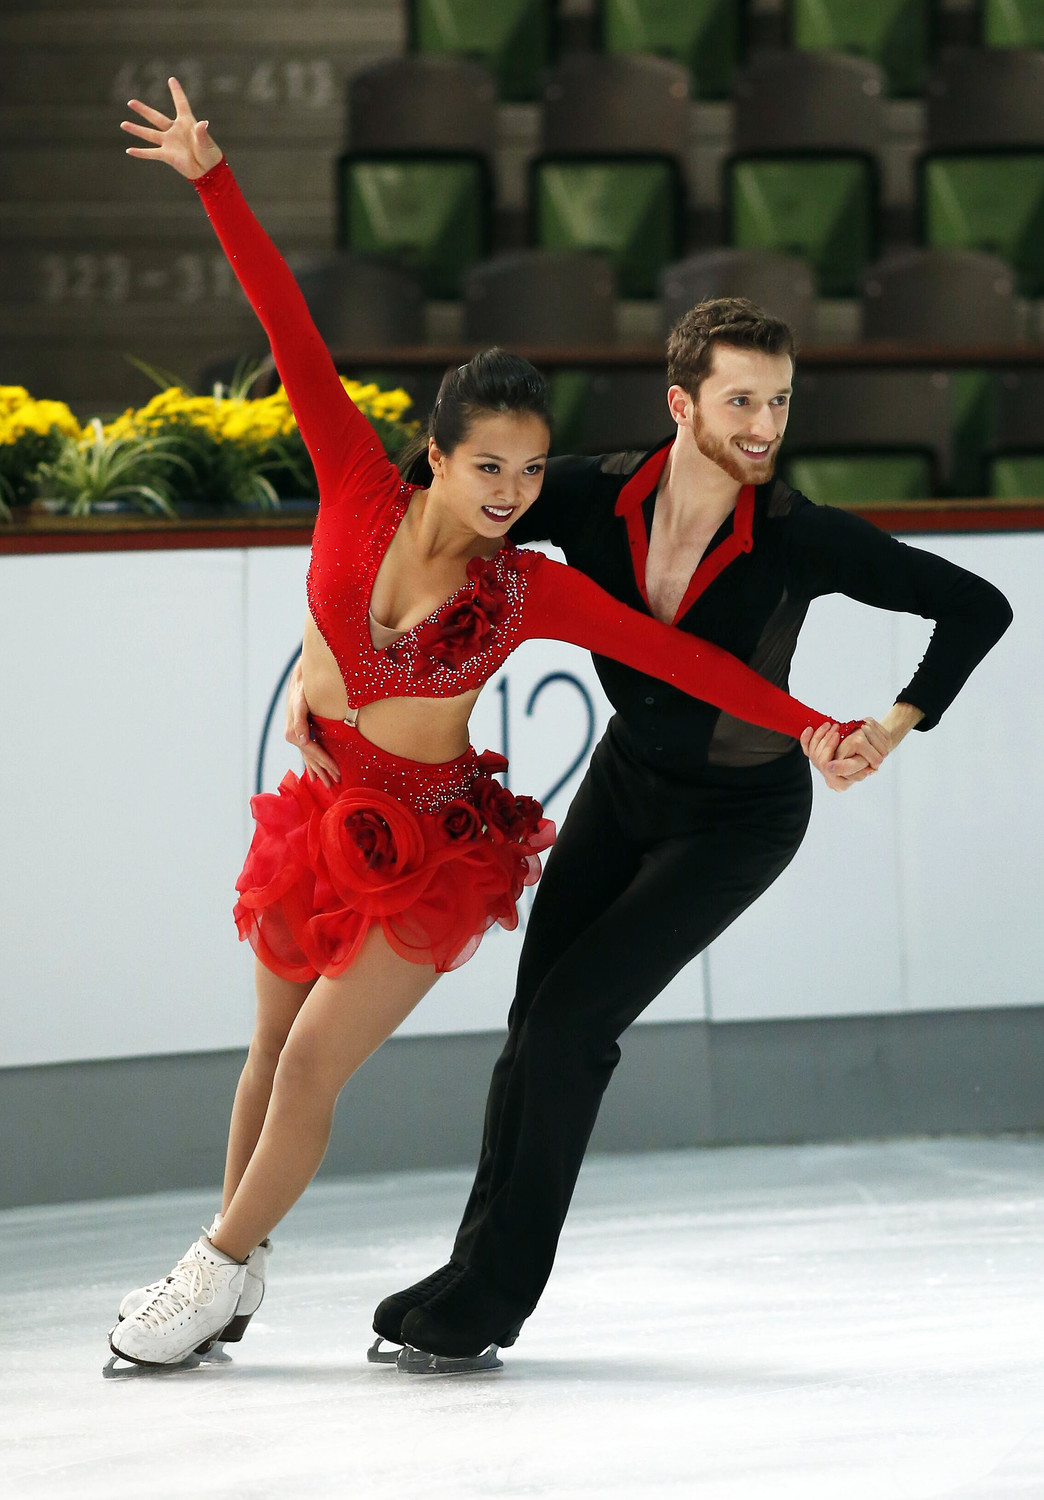 Representing South Korea, Alex Gamelin, formerly of North Merrick, and his partner, Yura Min, of South Korea, will compete in ice dancing in the Winter Olympics.